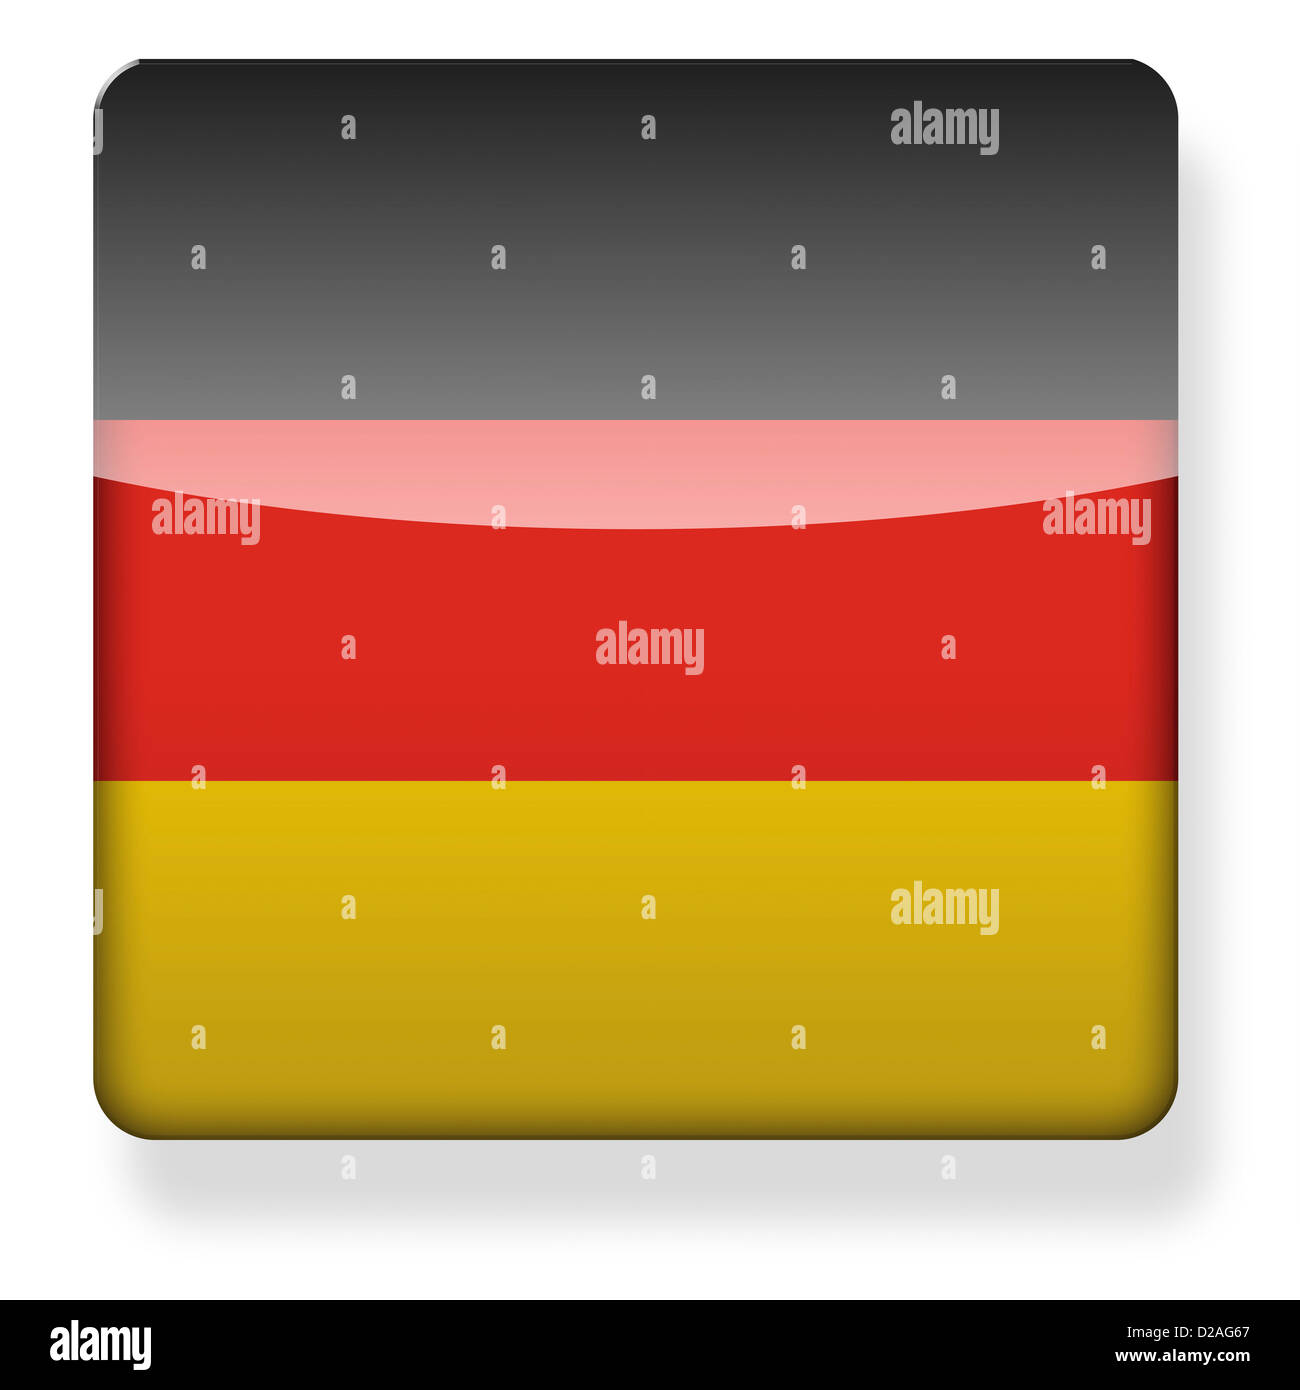 Germany flag as an app icon. Clipping path included. - Stock Image